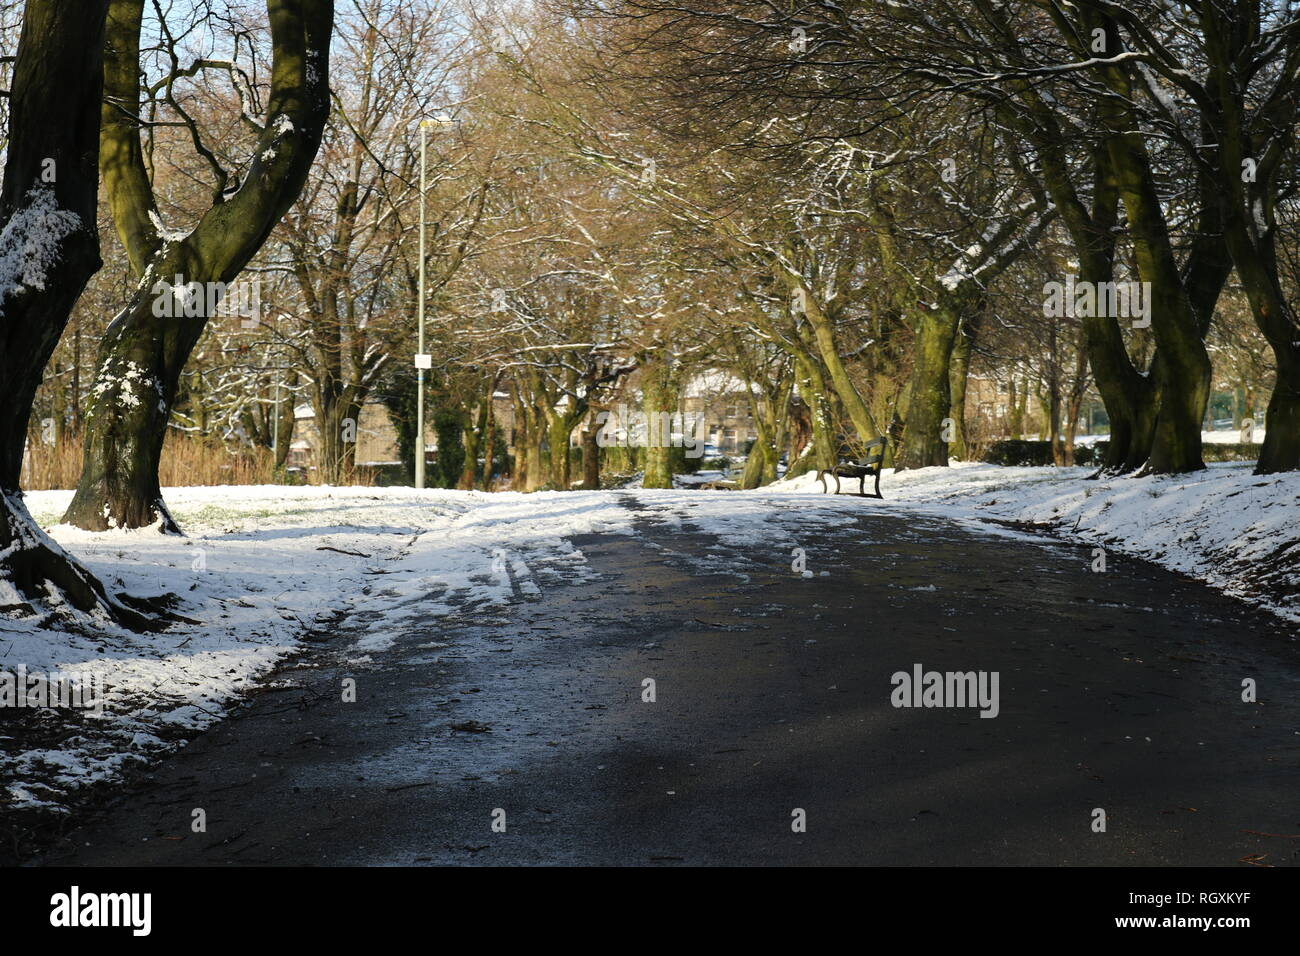 30/01/19 Edgeside Park, Waterfoot, Rossendale after a night of snow fall. - Stock Image